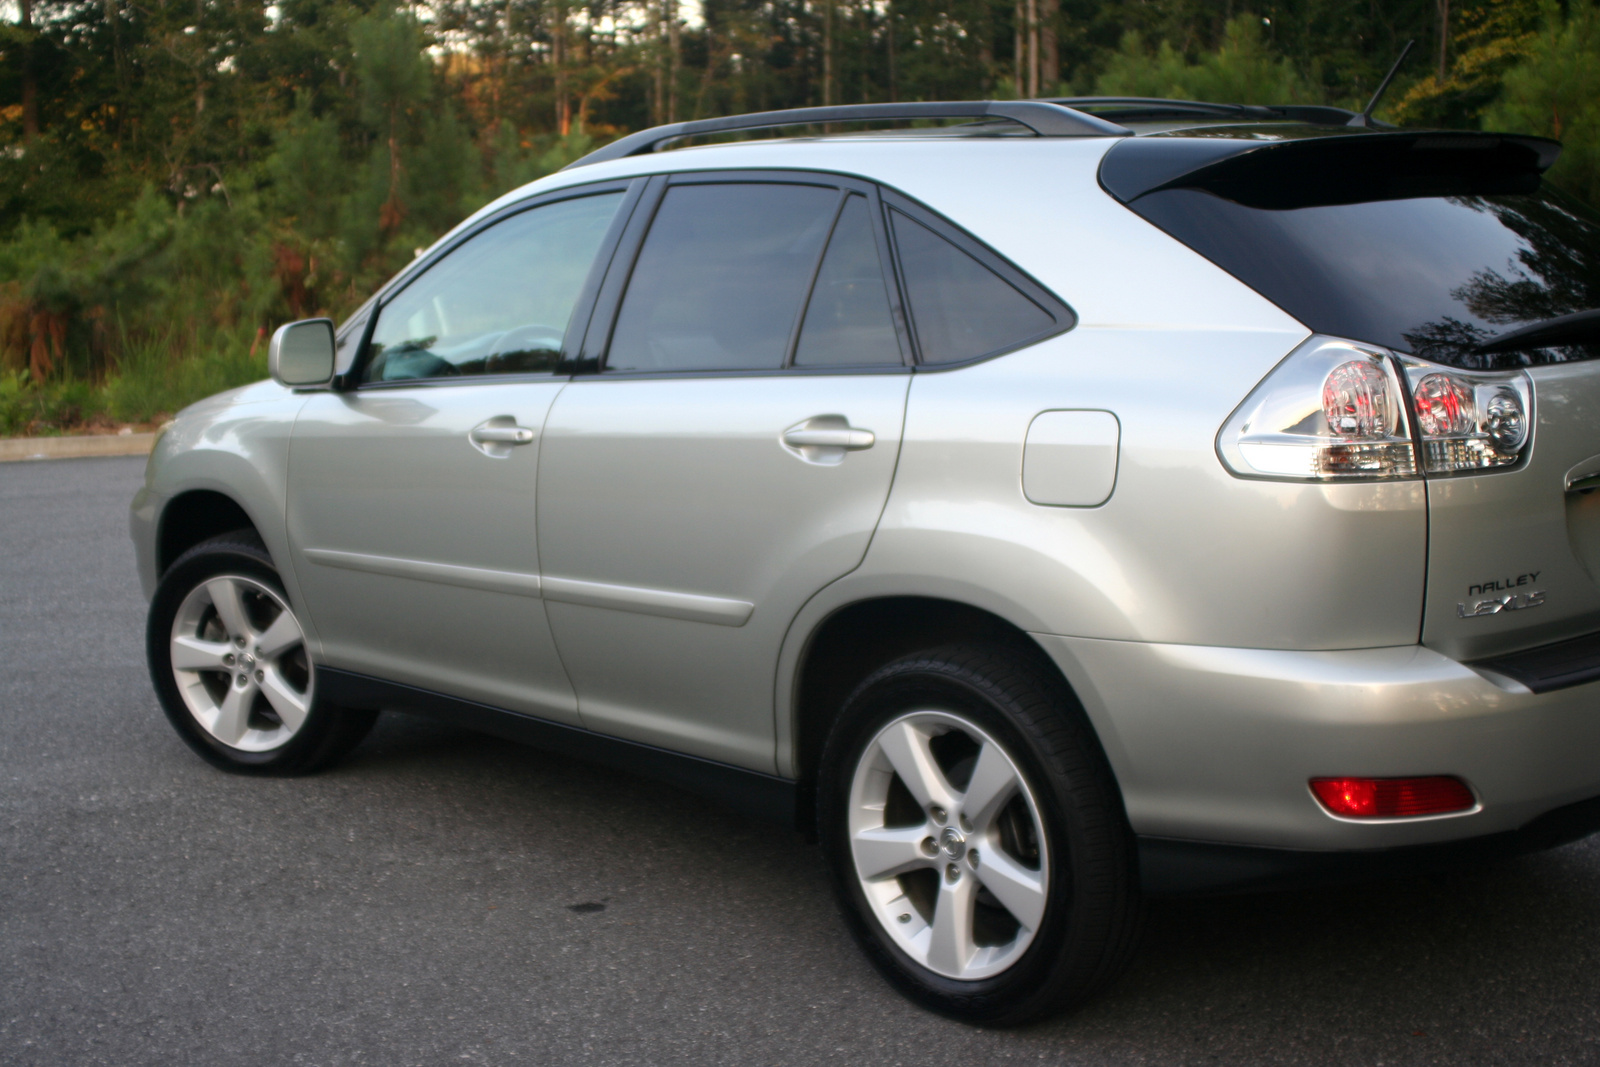 used lexus rx330 with 2007 Lexus Rx 350 Pictures C7320 on 2006 Lexus Ls 430 Pictures C5655 pi11968384 besides 2001 Lexus Is 200 Pictures C17723 pi11021730 moreover Lexus rx330 a1236764284b2529525 p together with T3 12 5 moreover 2007 Lexus IS 250 Overview C7318.